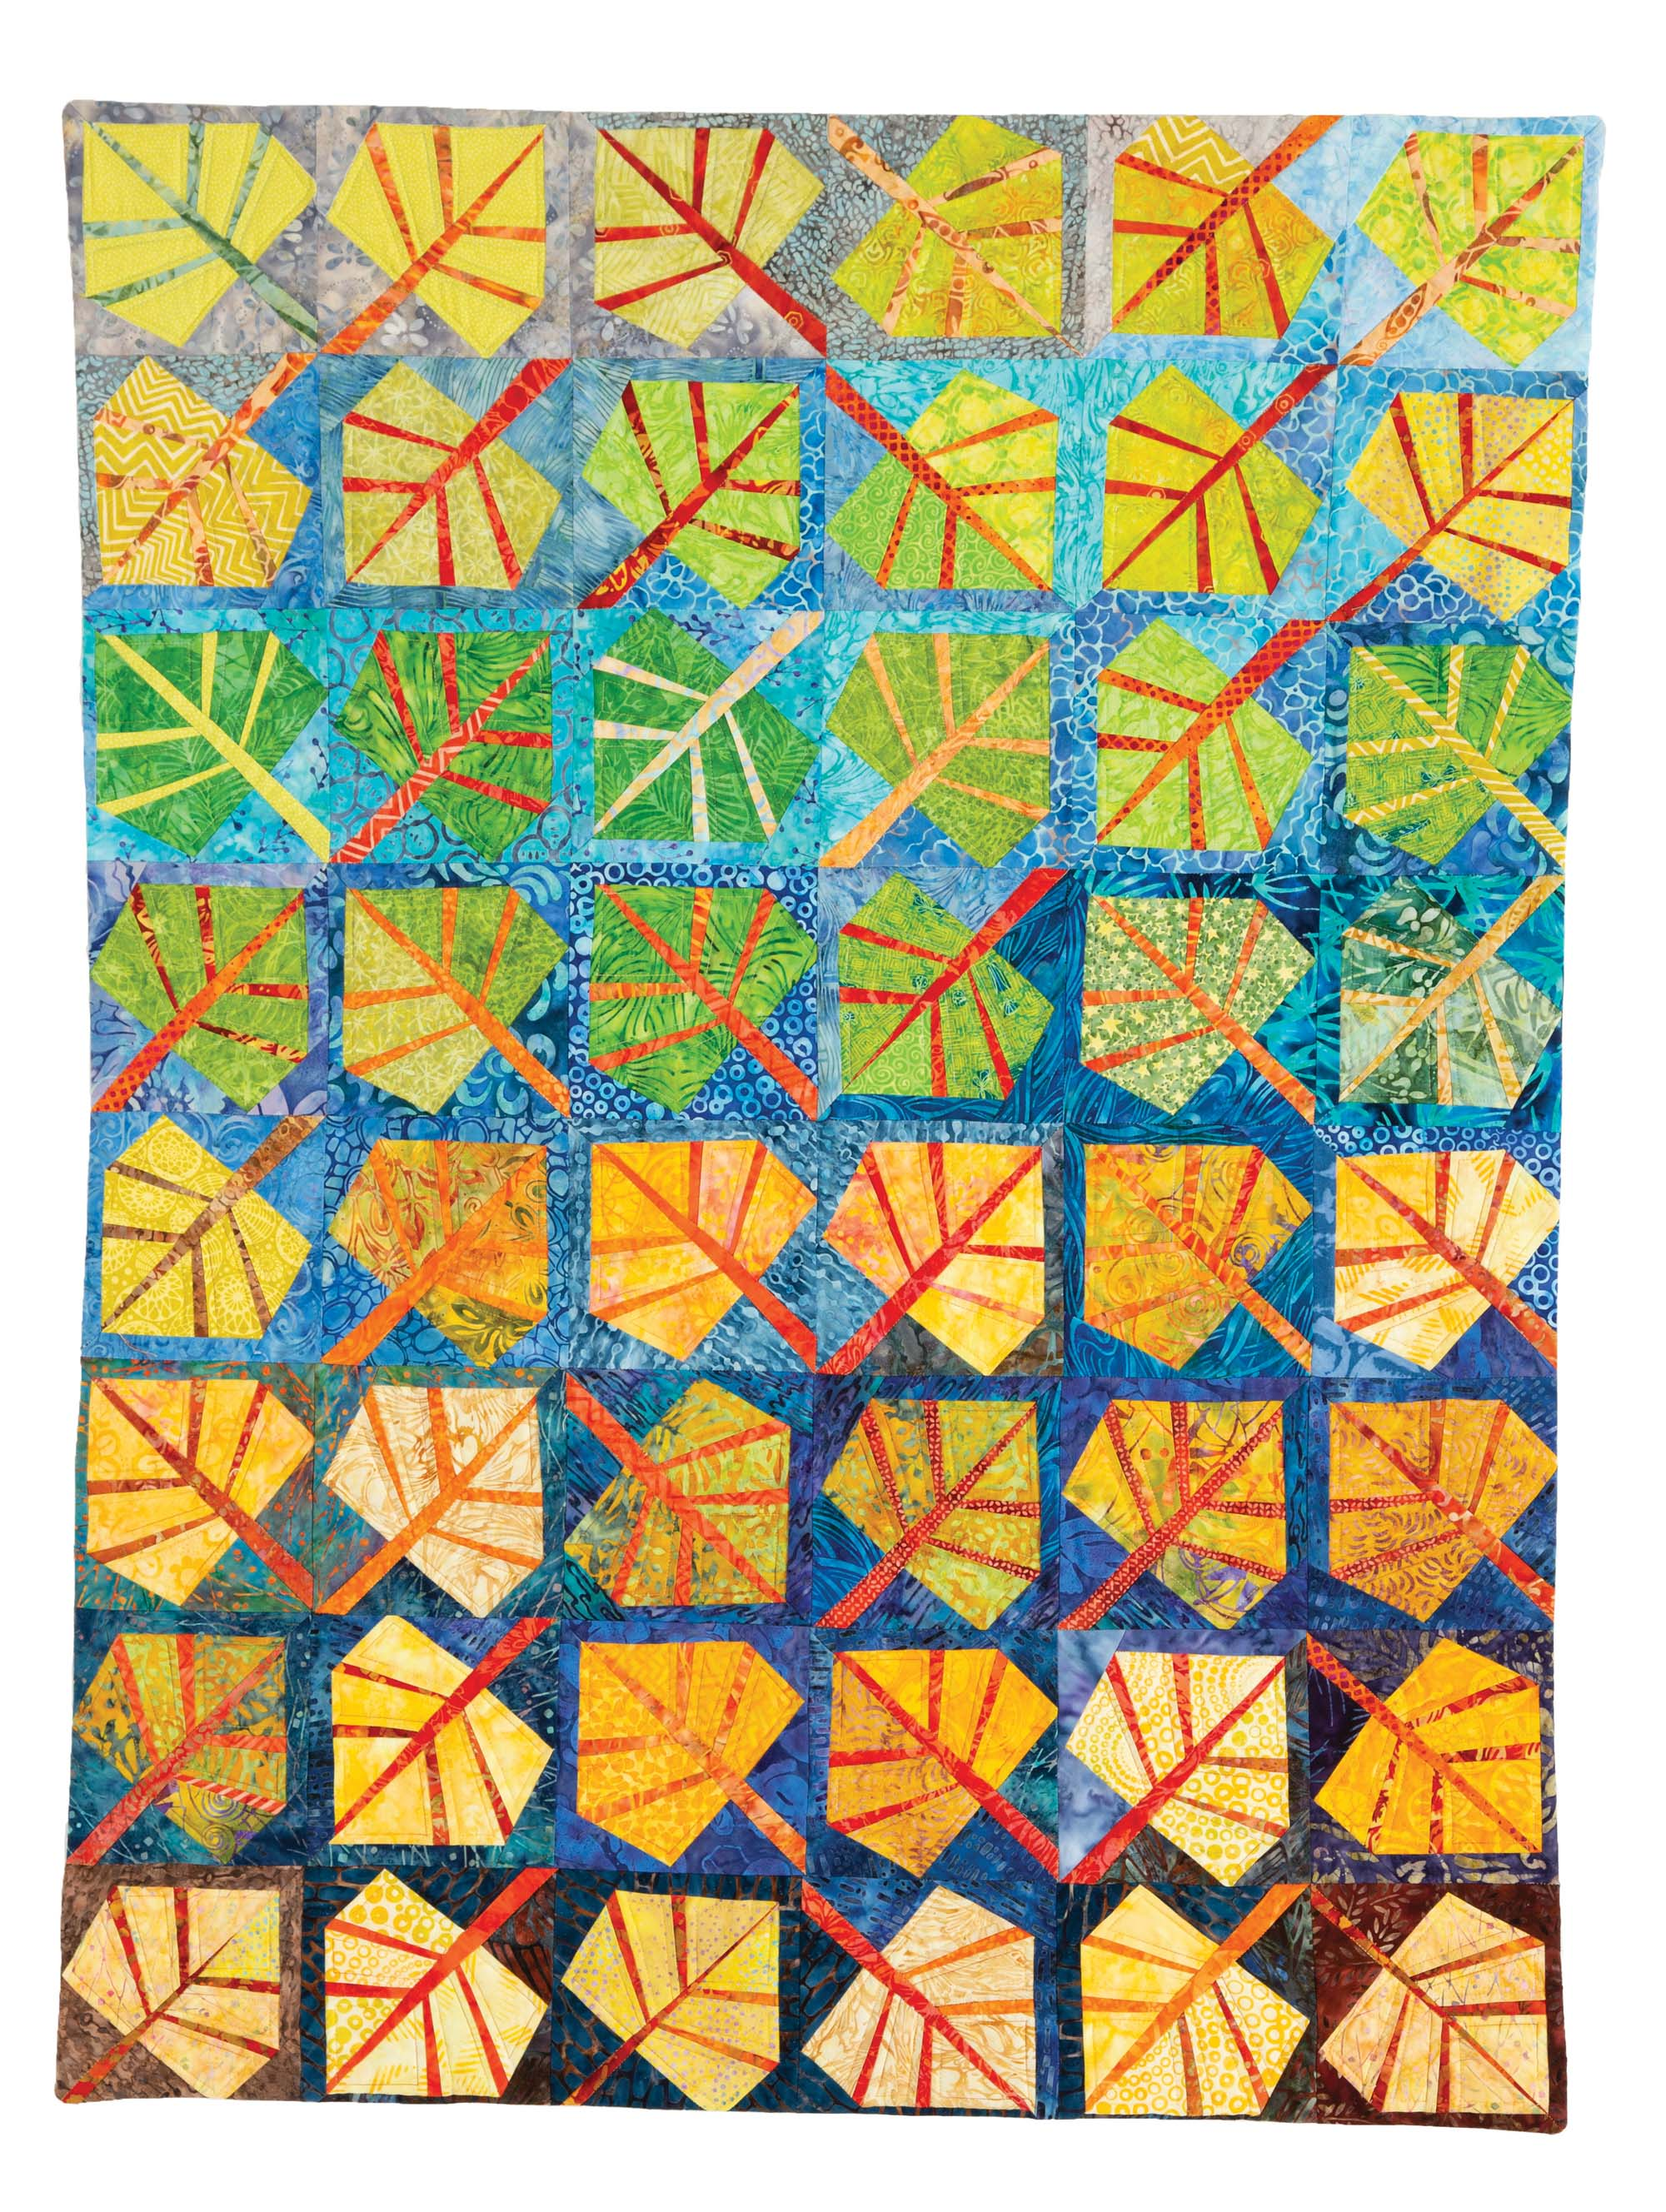 quilt-turning-leaves-flat